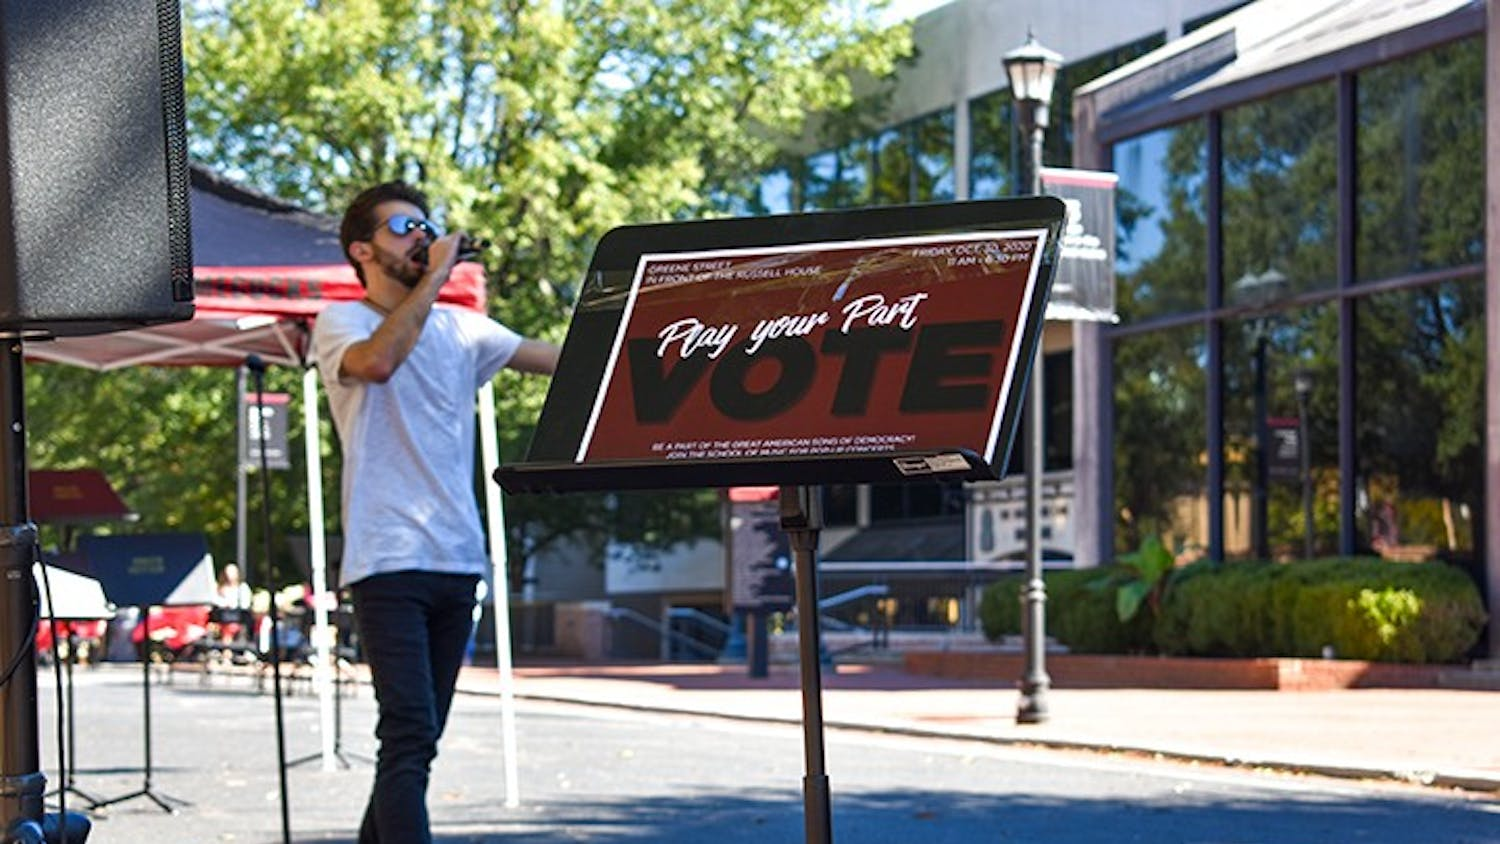 Lead singer of Room XII Mike Stearns performs in front of Russell House on Greene street as part of the Play Your Part campaign. Play Your Part is encouraging people to register and vote in the upcoming election.